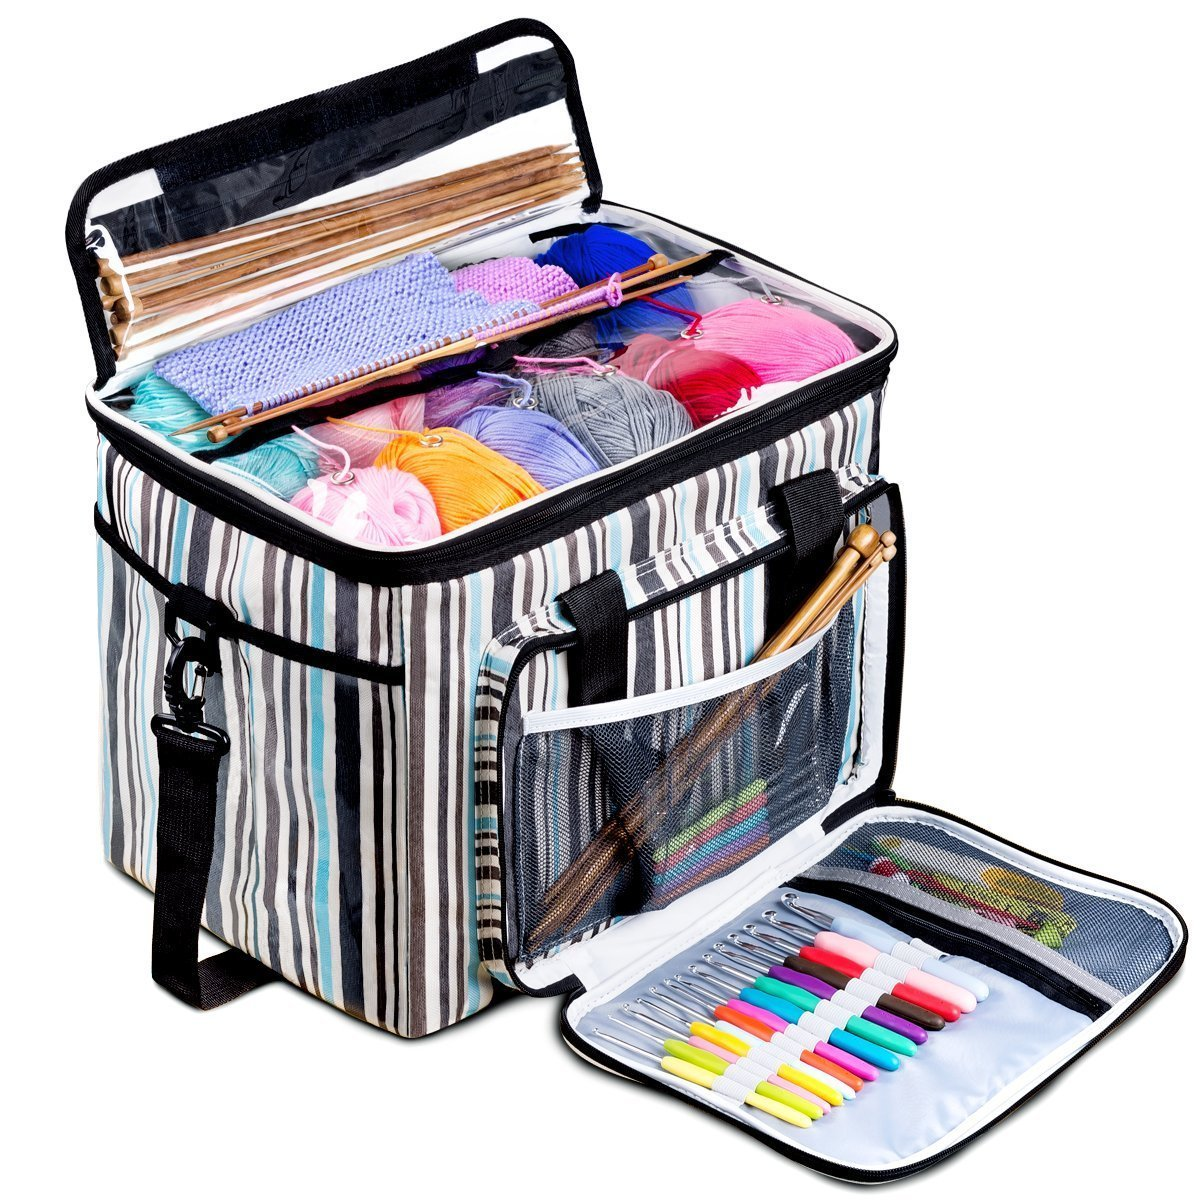 BONTIME Knitting Bag - High Capacity Striped Yarn Storage Tote Bag,Project Bags with Roomy Interior,Great for Organizing Everything You Need for Each of Projects,Large by BONTIME (Image #2)